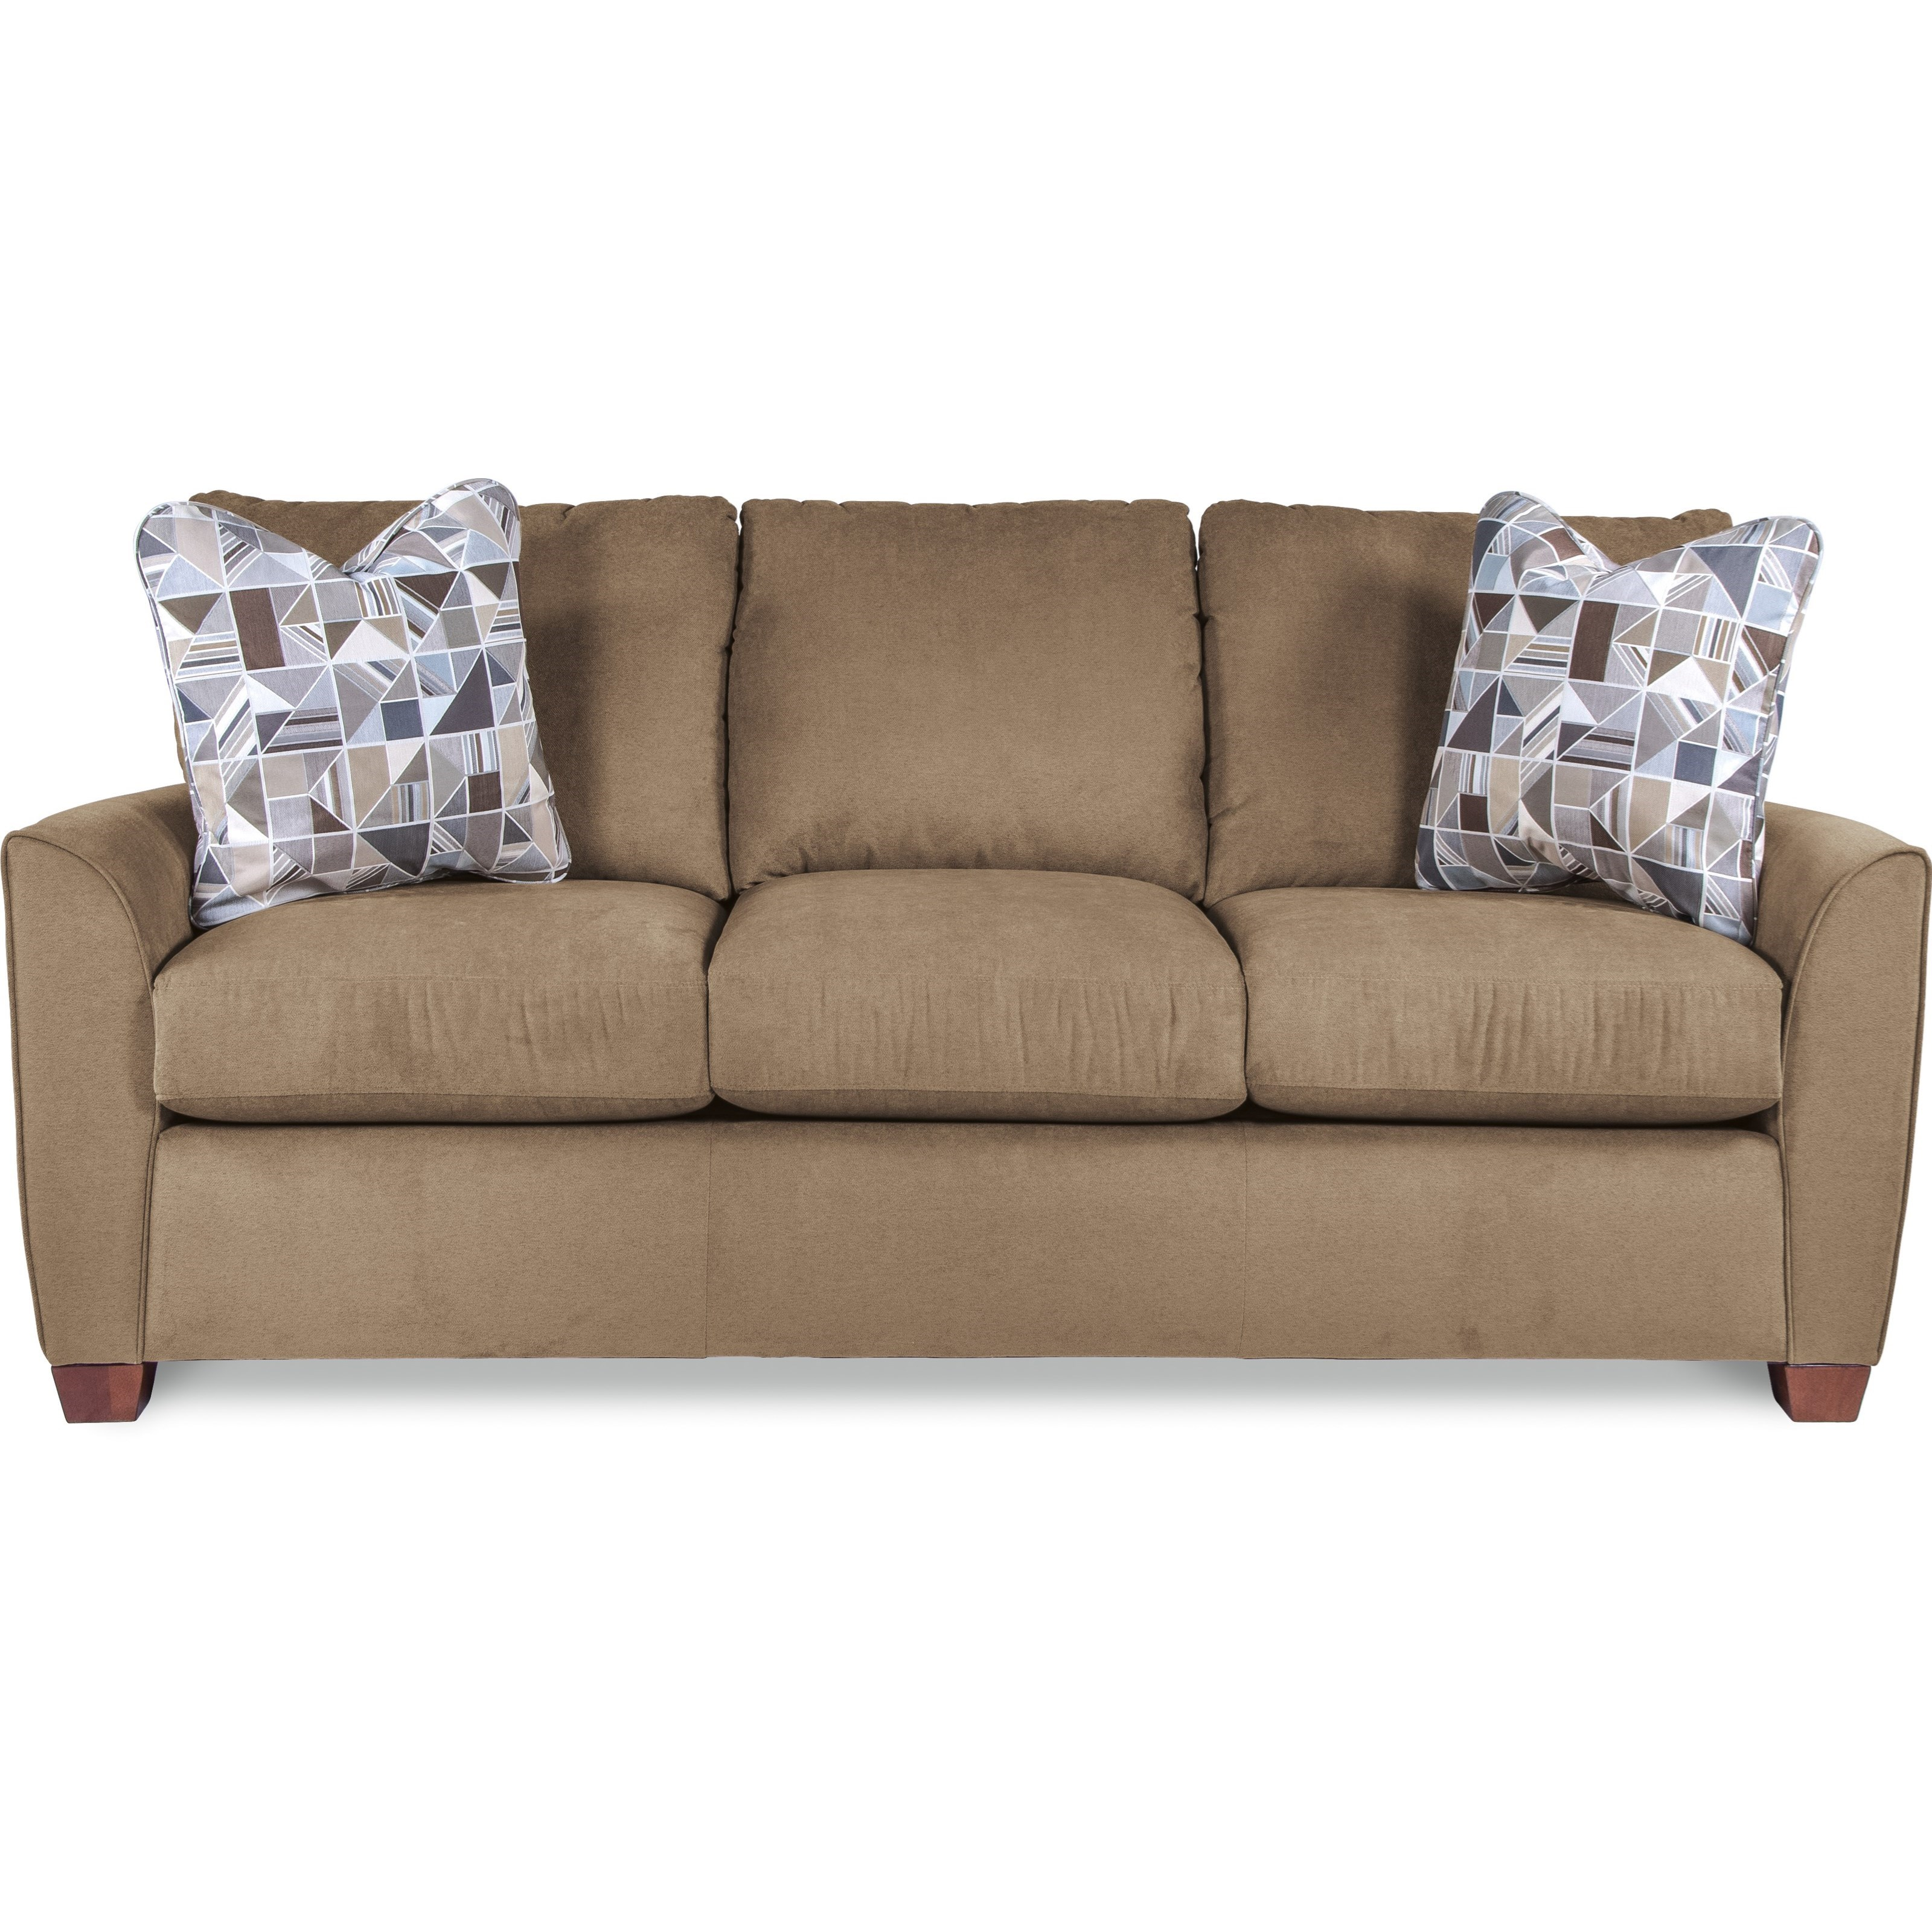 La Z Boy Amy Casual Sofa With Premier Comfortcore Cushions Boulevard Home Furnishings Sofas